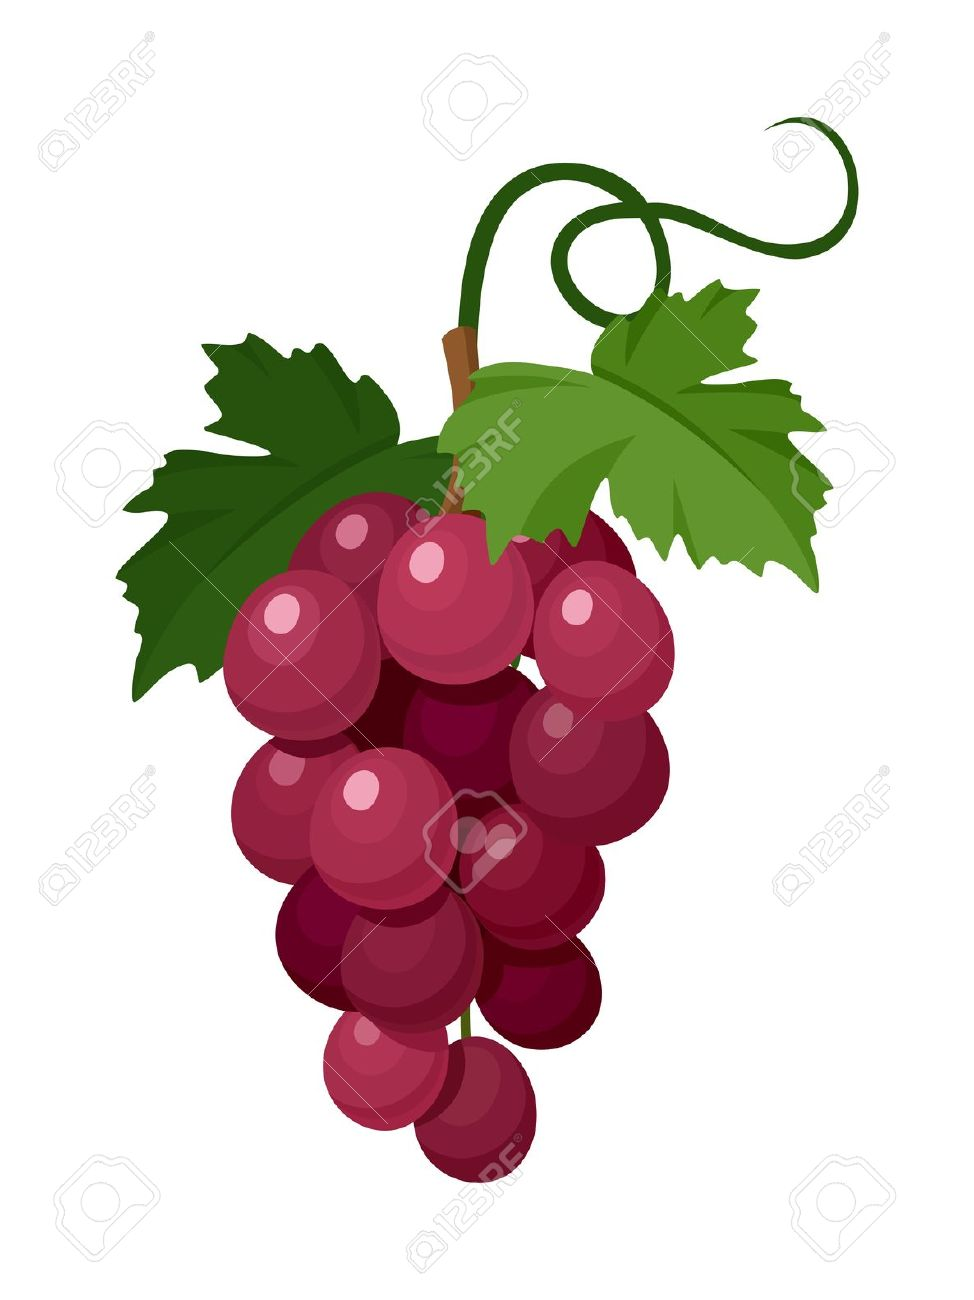 4,698 Grapevine Stock Vector Illustration And Royalty Free.